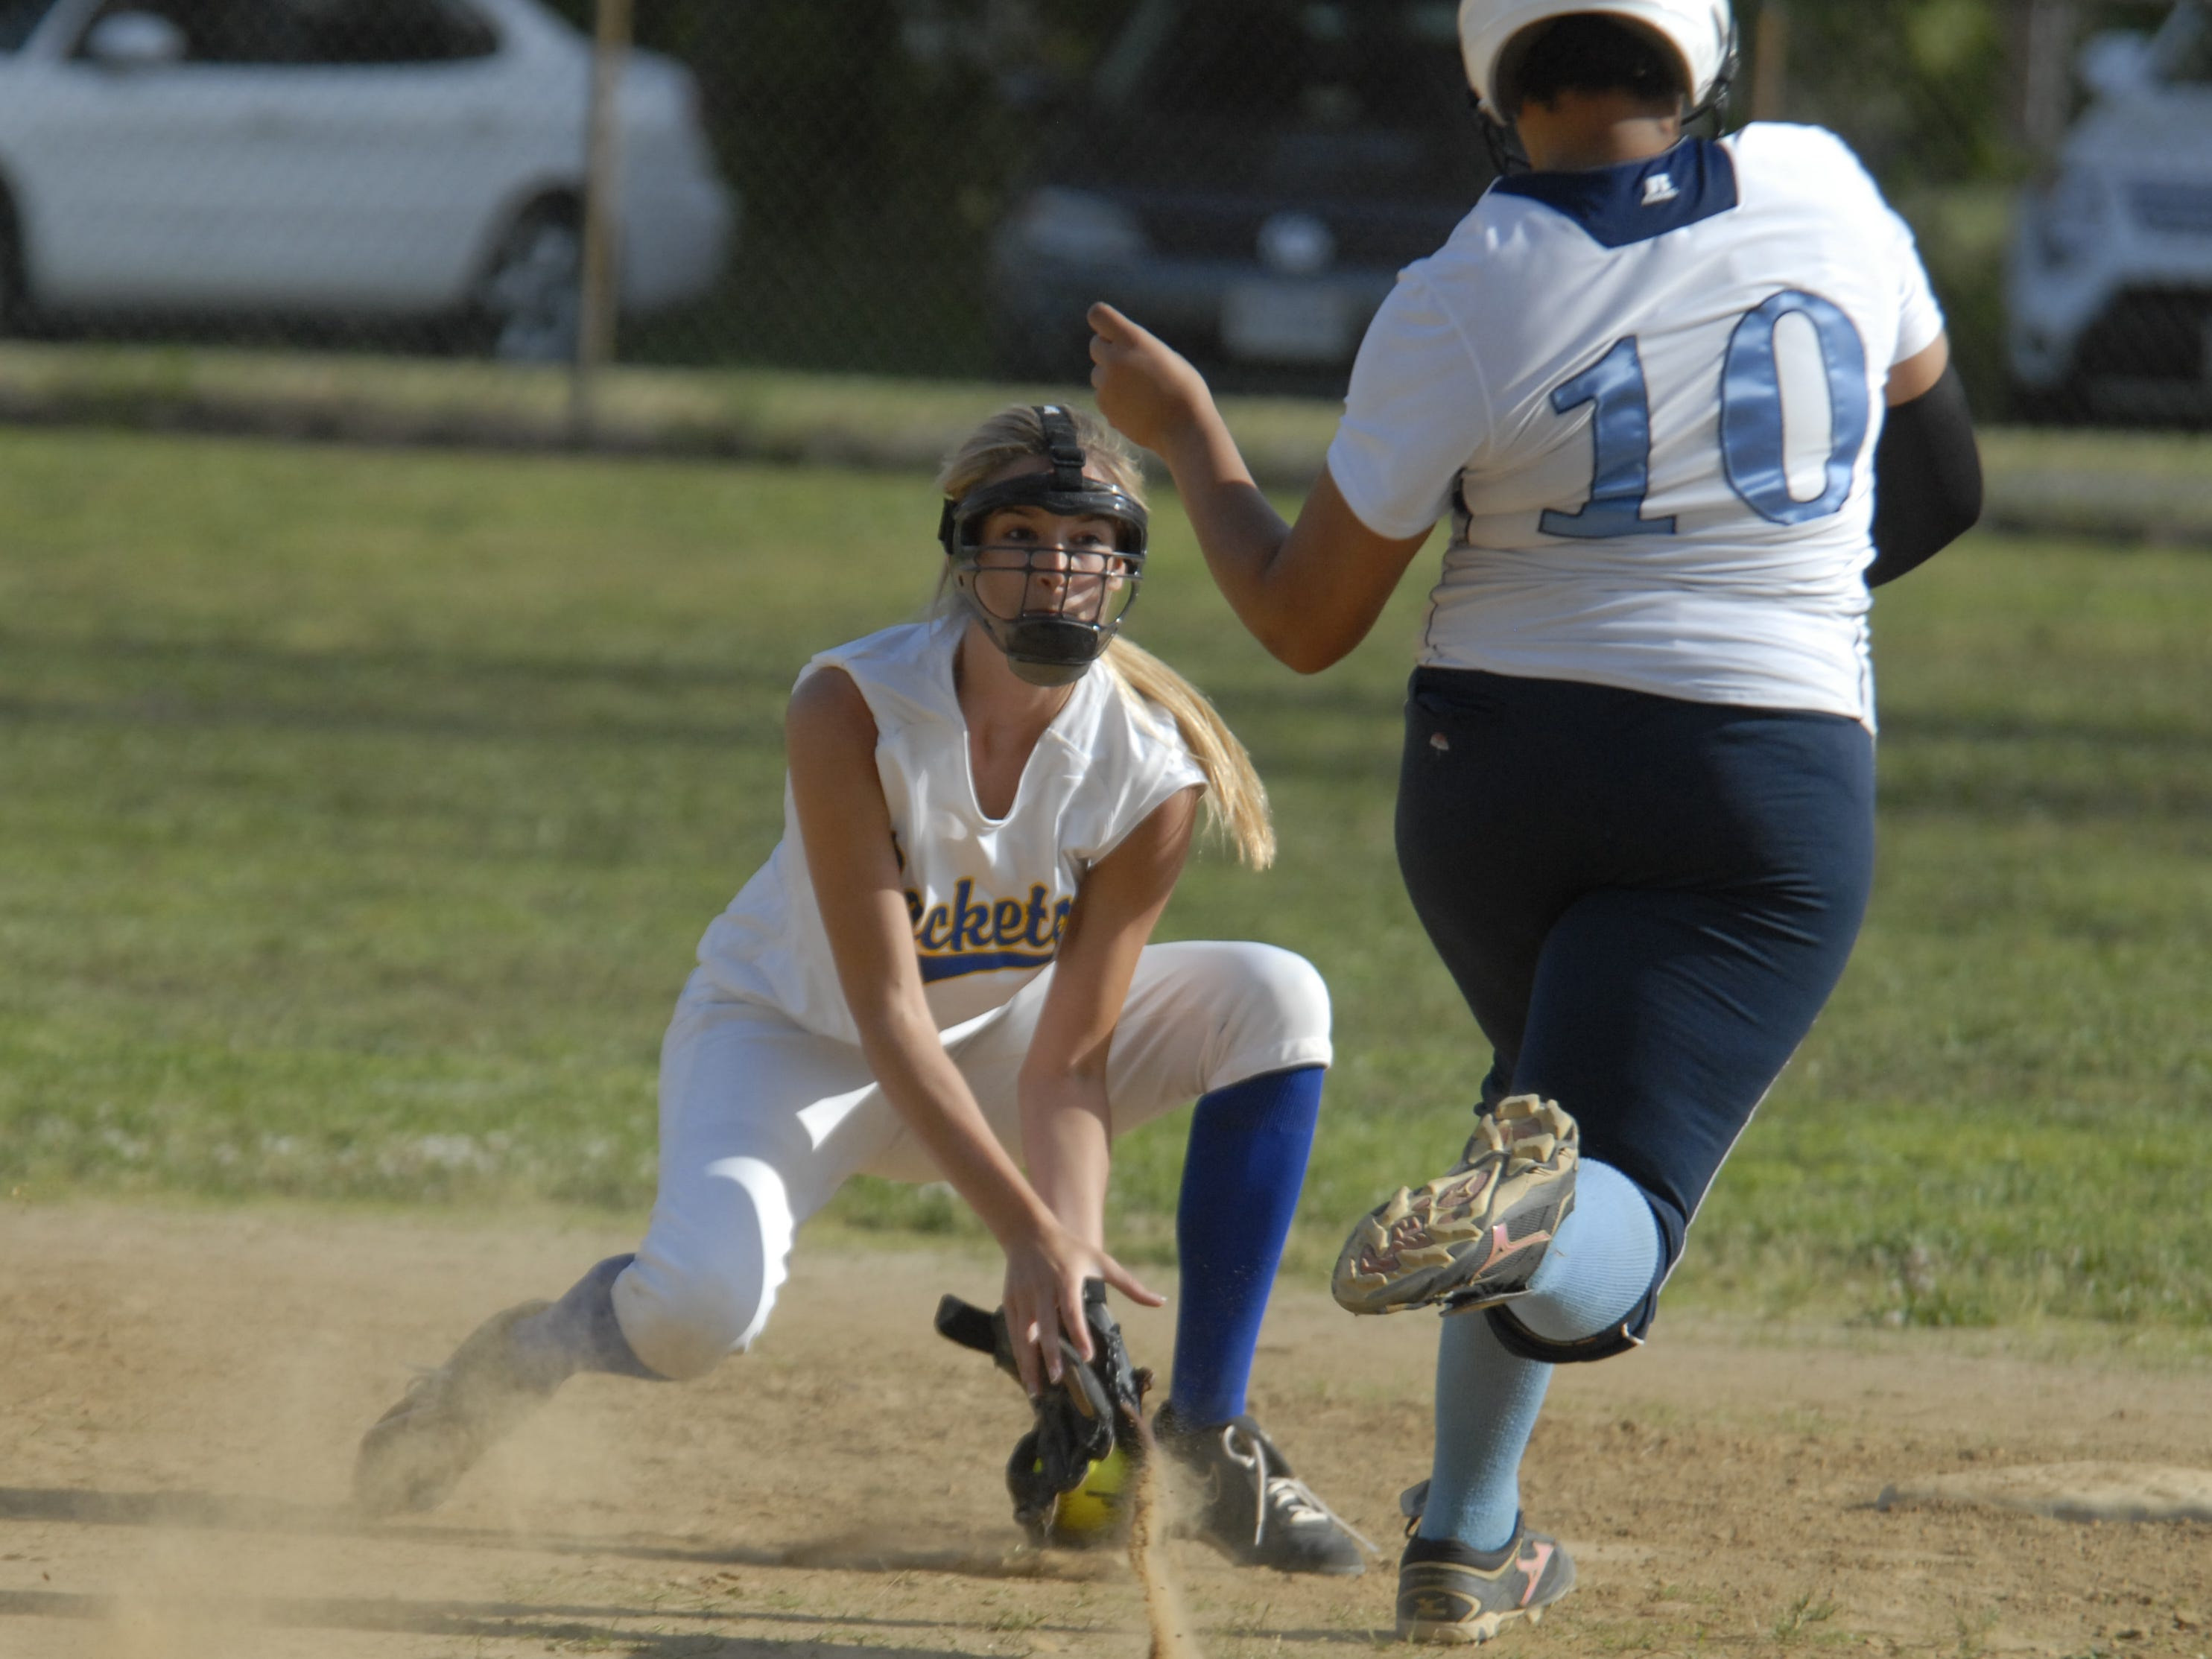 Northampton's Whitney Metz goes to tag a Middlesex runner at second during the 1A East regional quarterfinal in Eastville on June 2. The Yellow Jackets fell to the Chargers, 8-0.